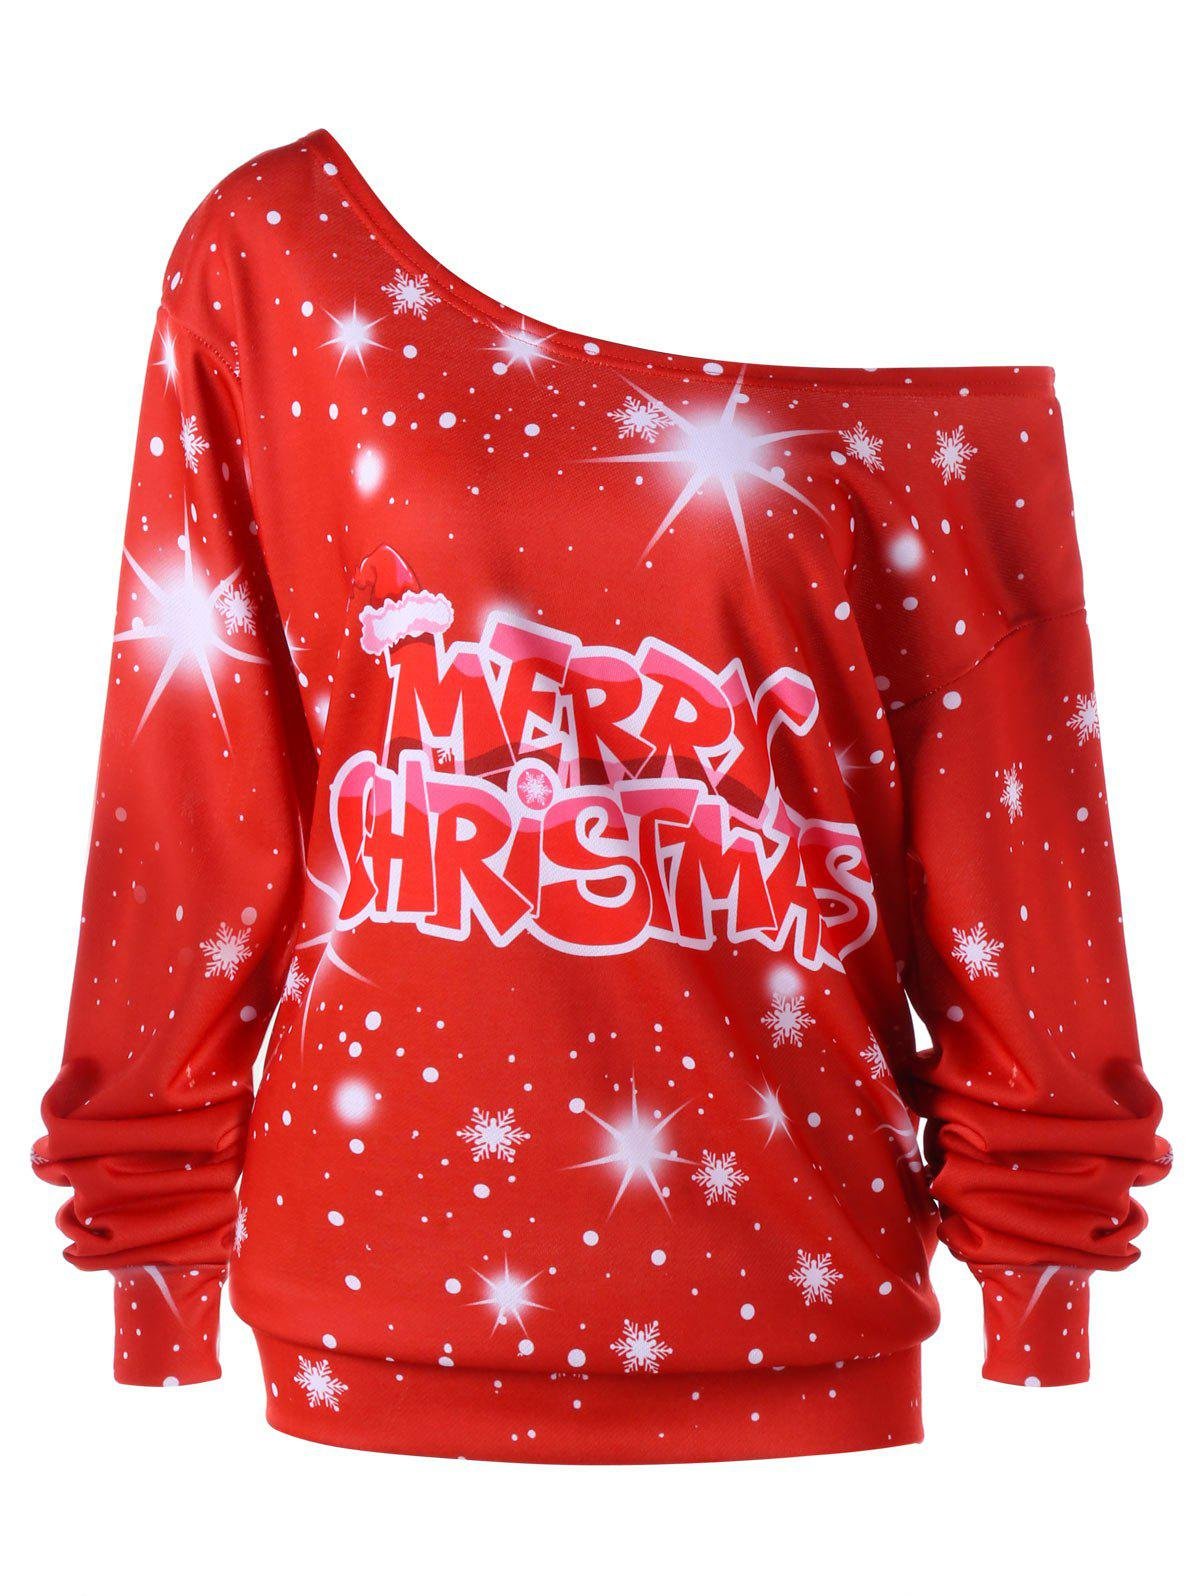 Merry Christmas Plus Size Skew Colllar Sweatshirt plus size christmas reindeer skew collar sweatshirt